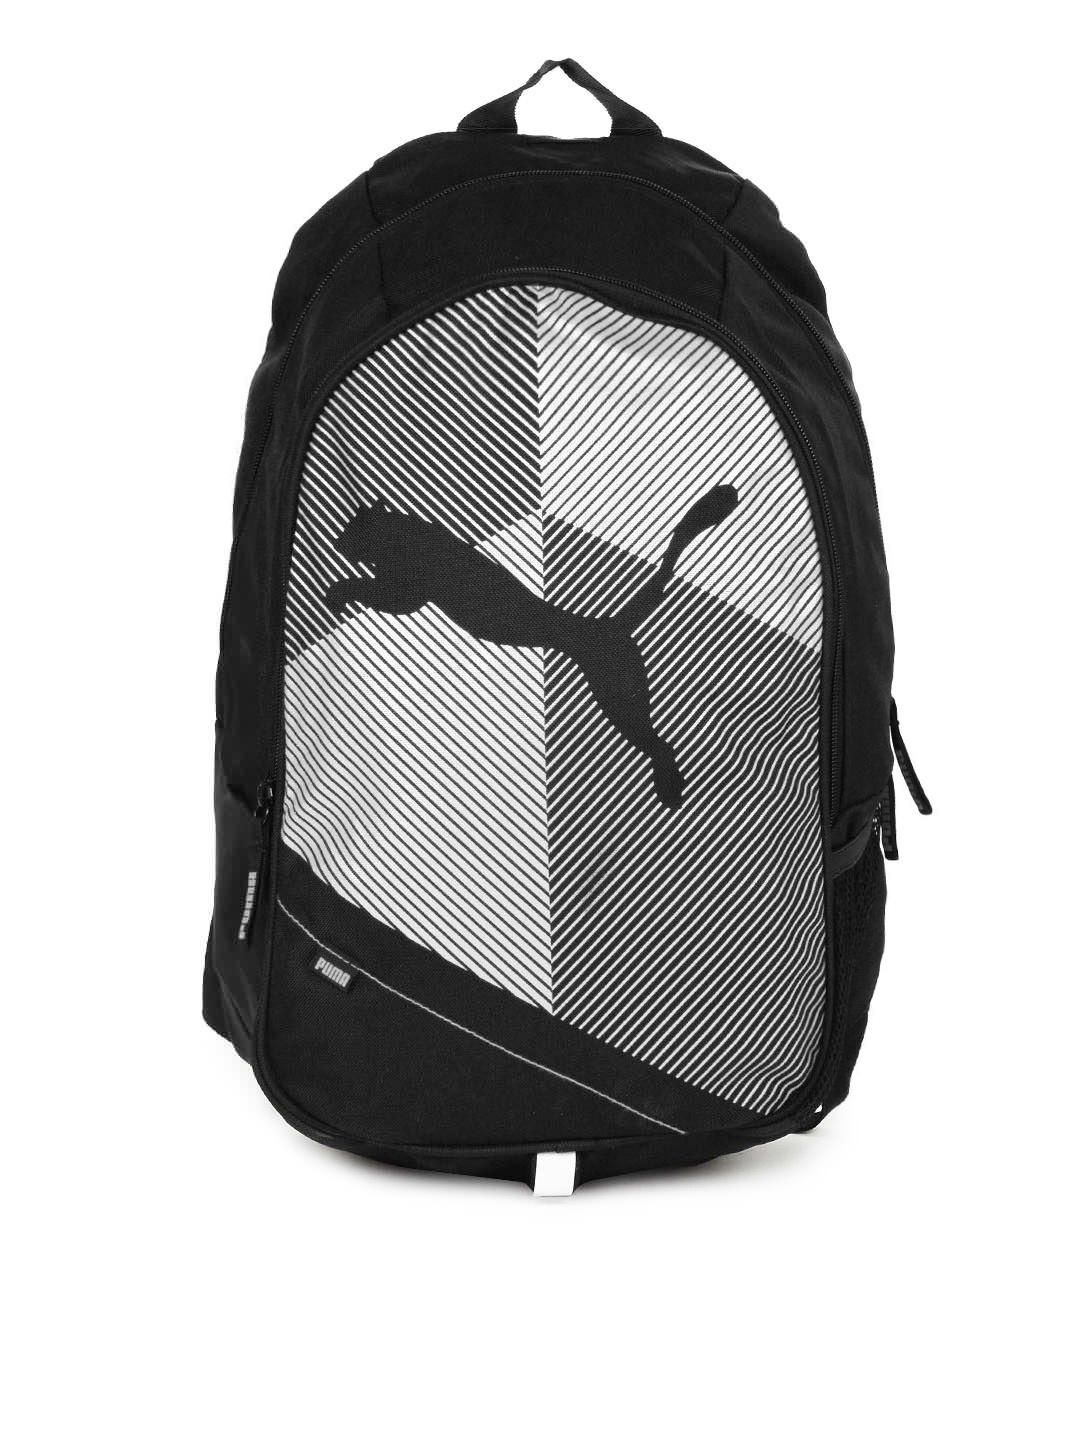 Puma Unisex Echo Plus Black & White Backpack low price